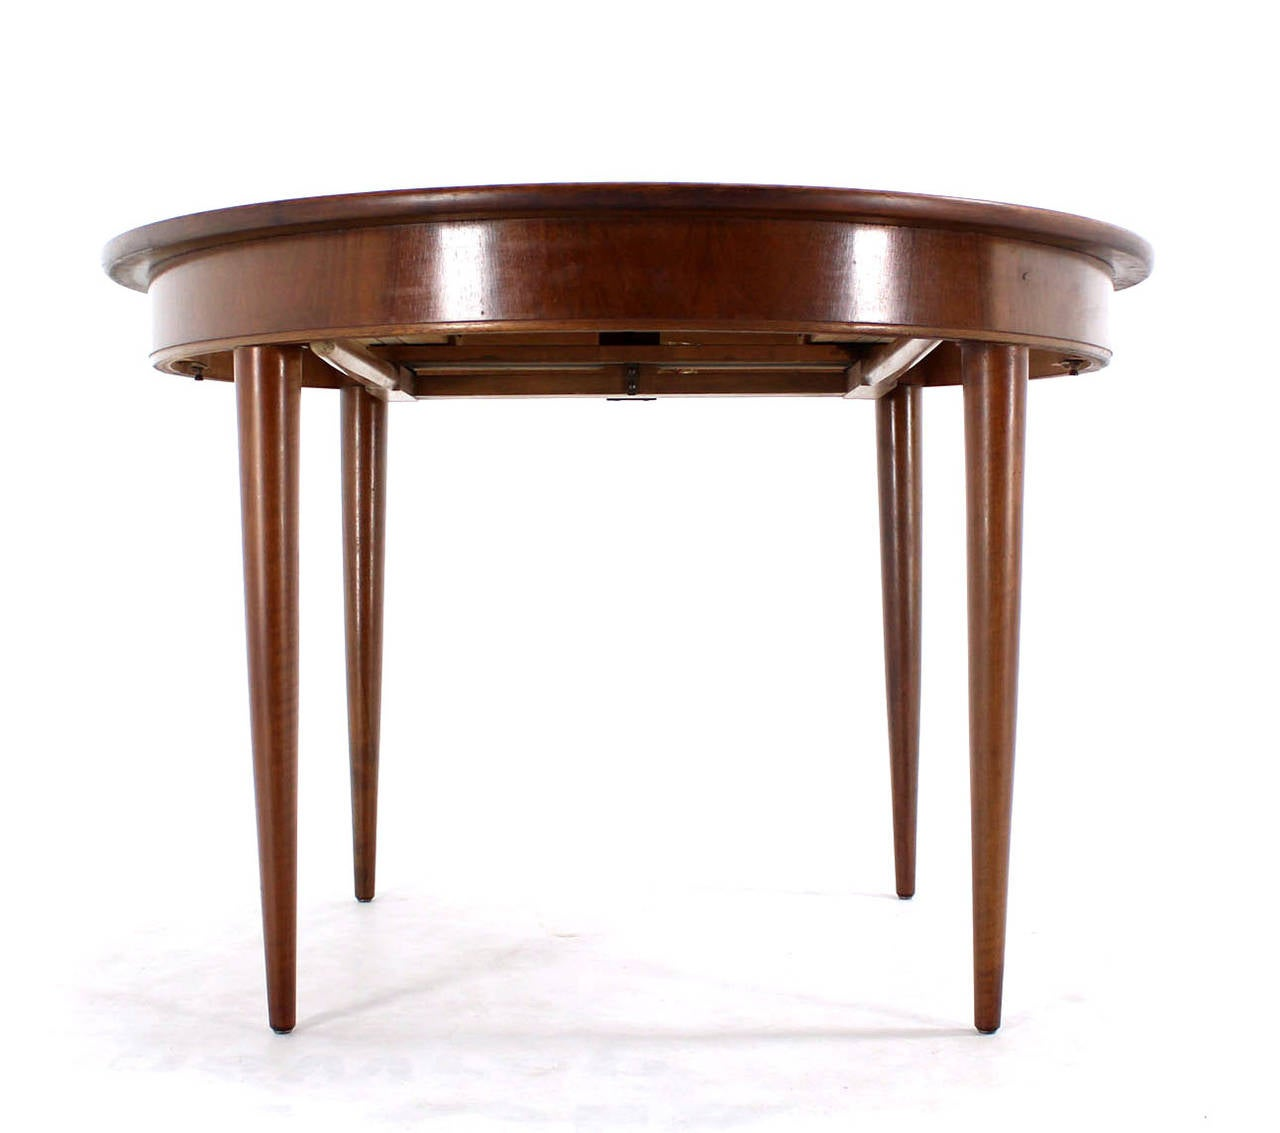 Erno Fabry Mid Century Modern Round Walnut Dining Table